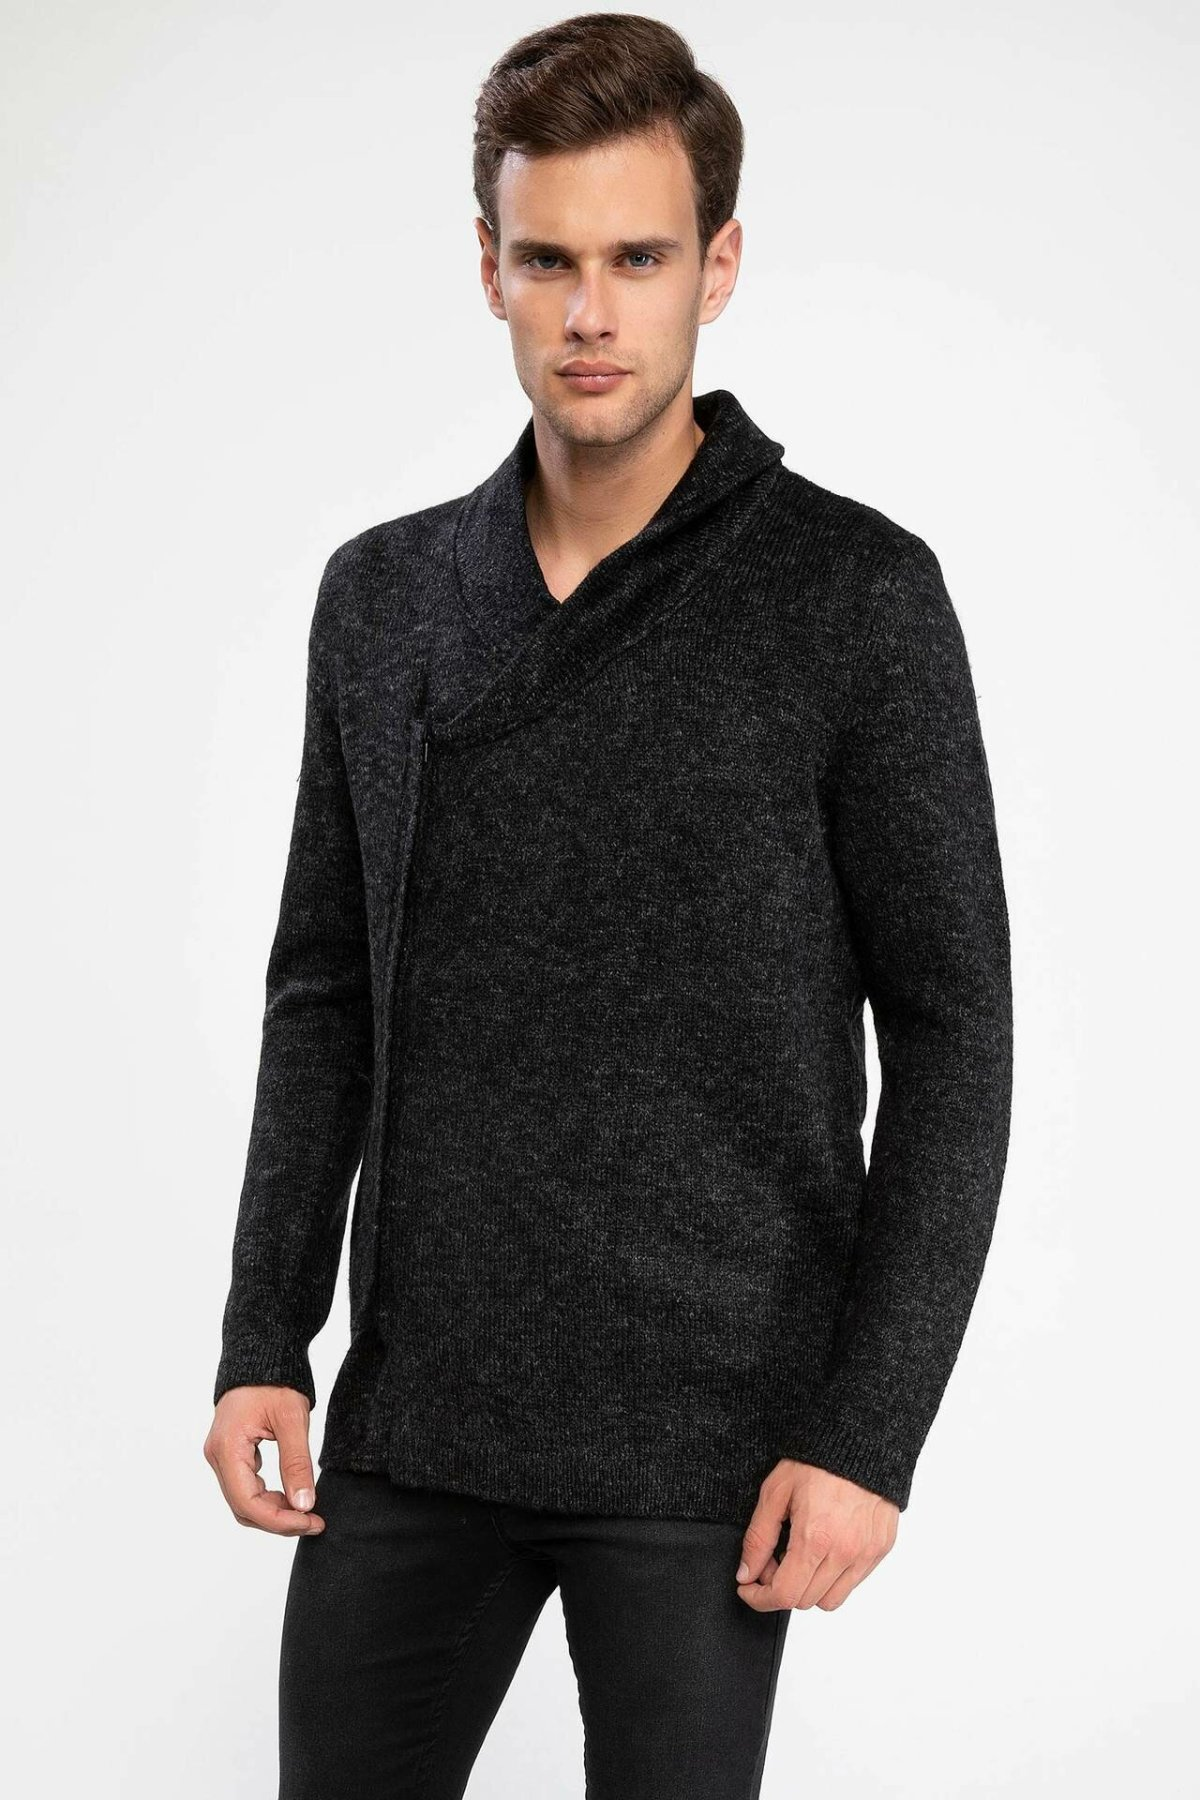 DeFacto Man Winter Black Knitted Cardigan Creative Design Men V-neck Casual Top Coats /Male Bolero Cardigans-J4756AZ18WN